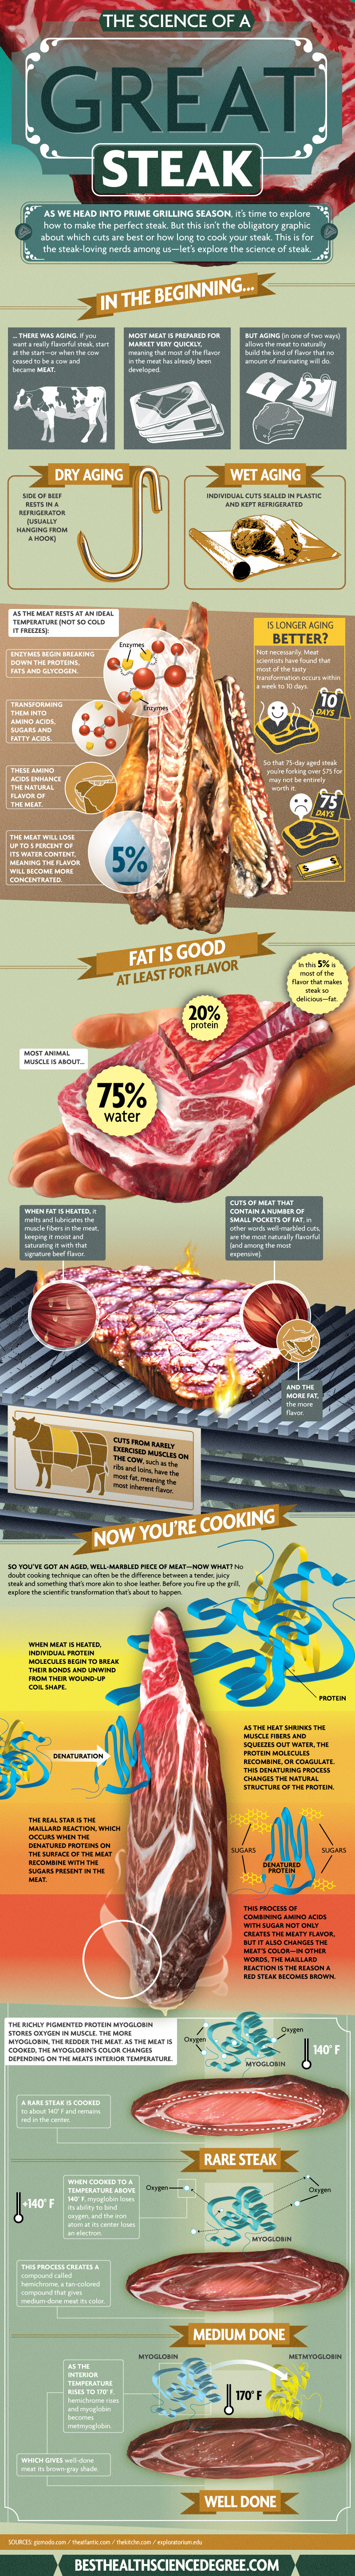 The Science of a Great Steak